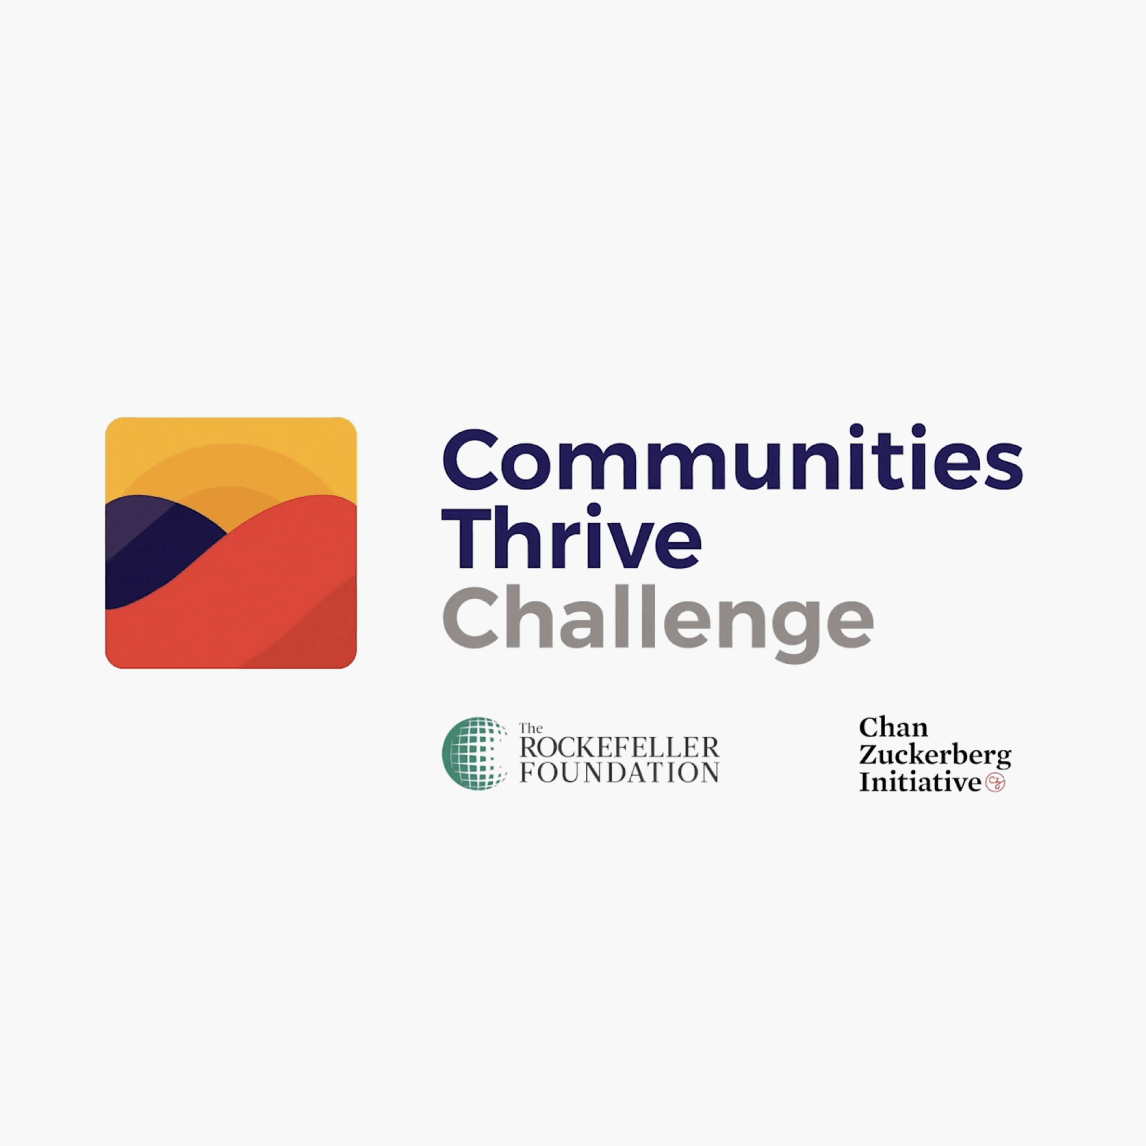 BDT awarded $1M through Communities Thrive Challenge 2018